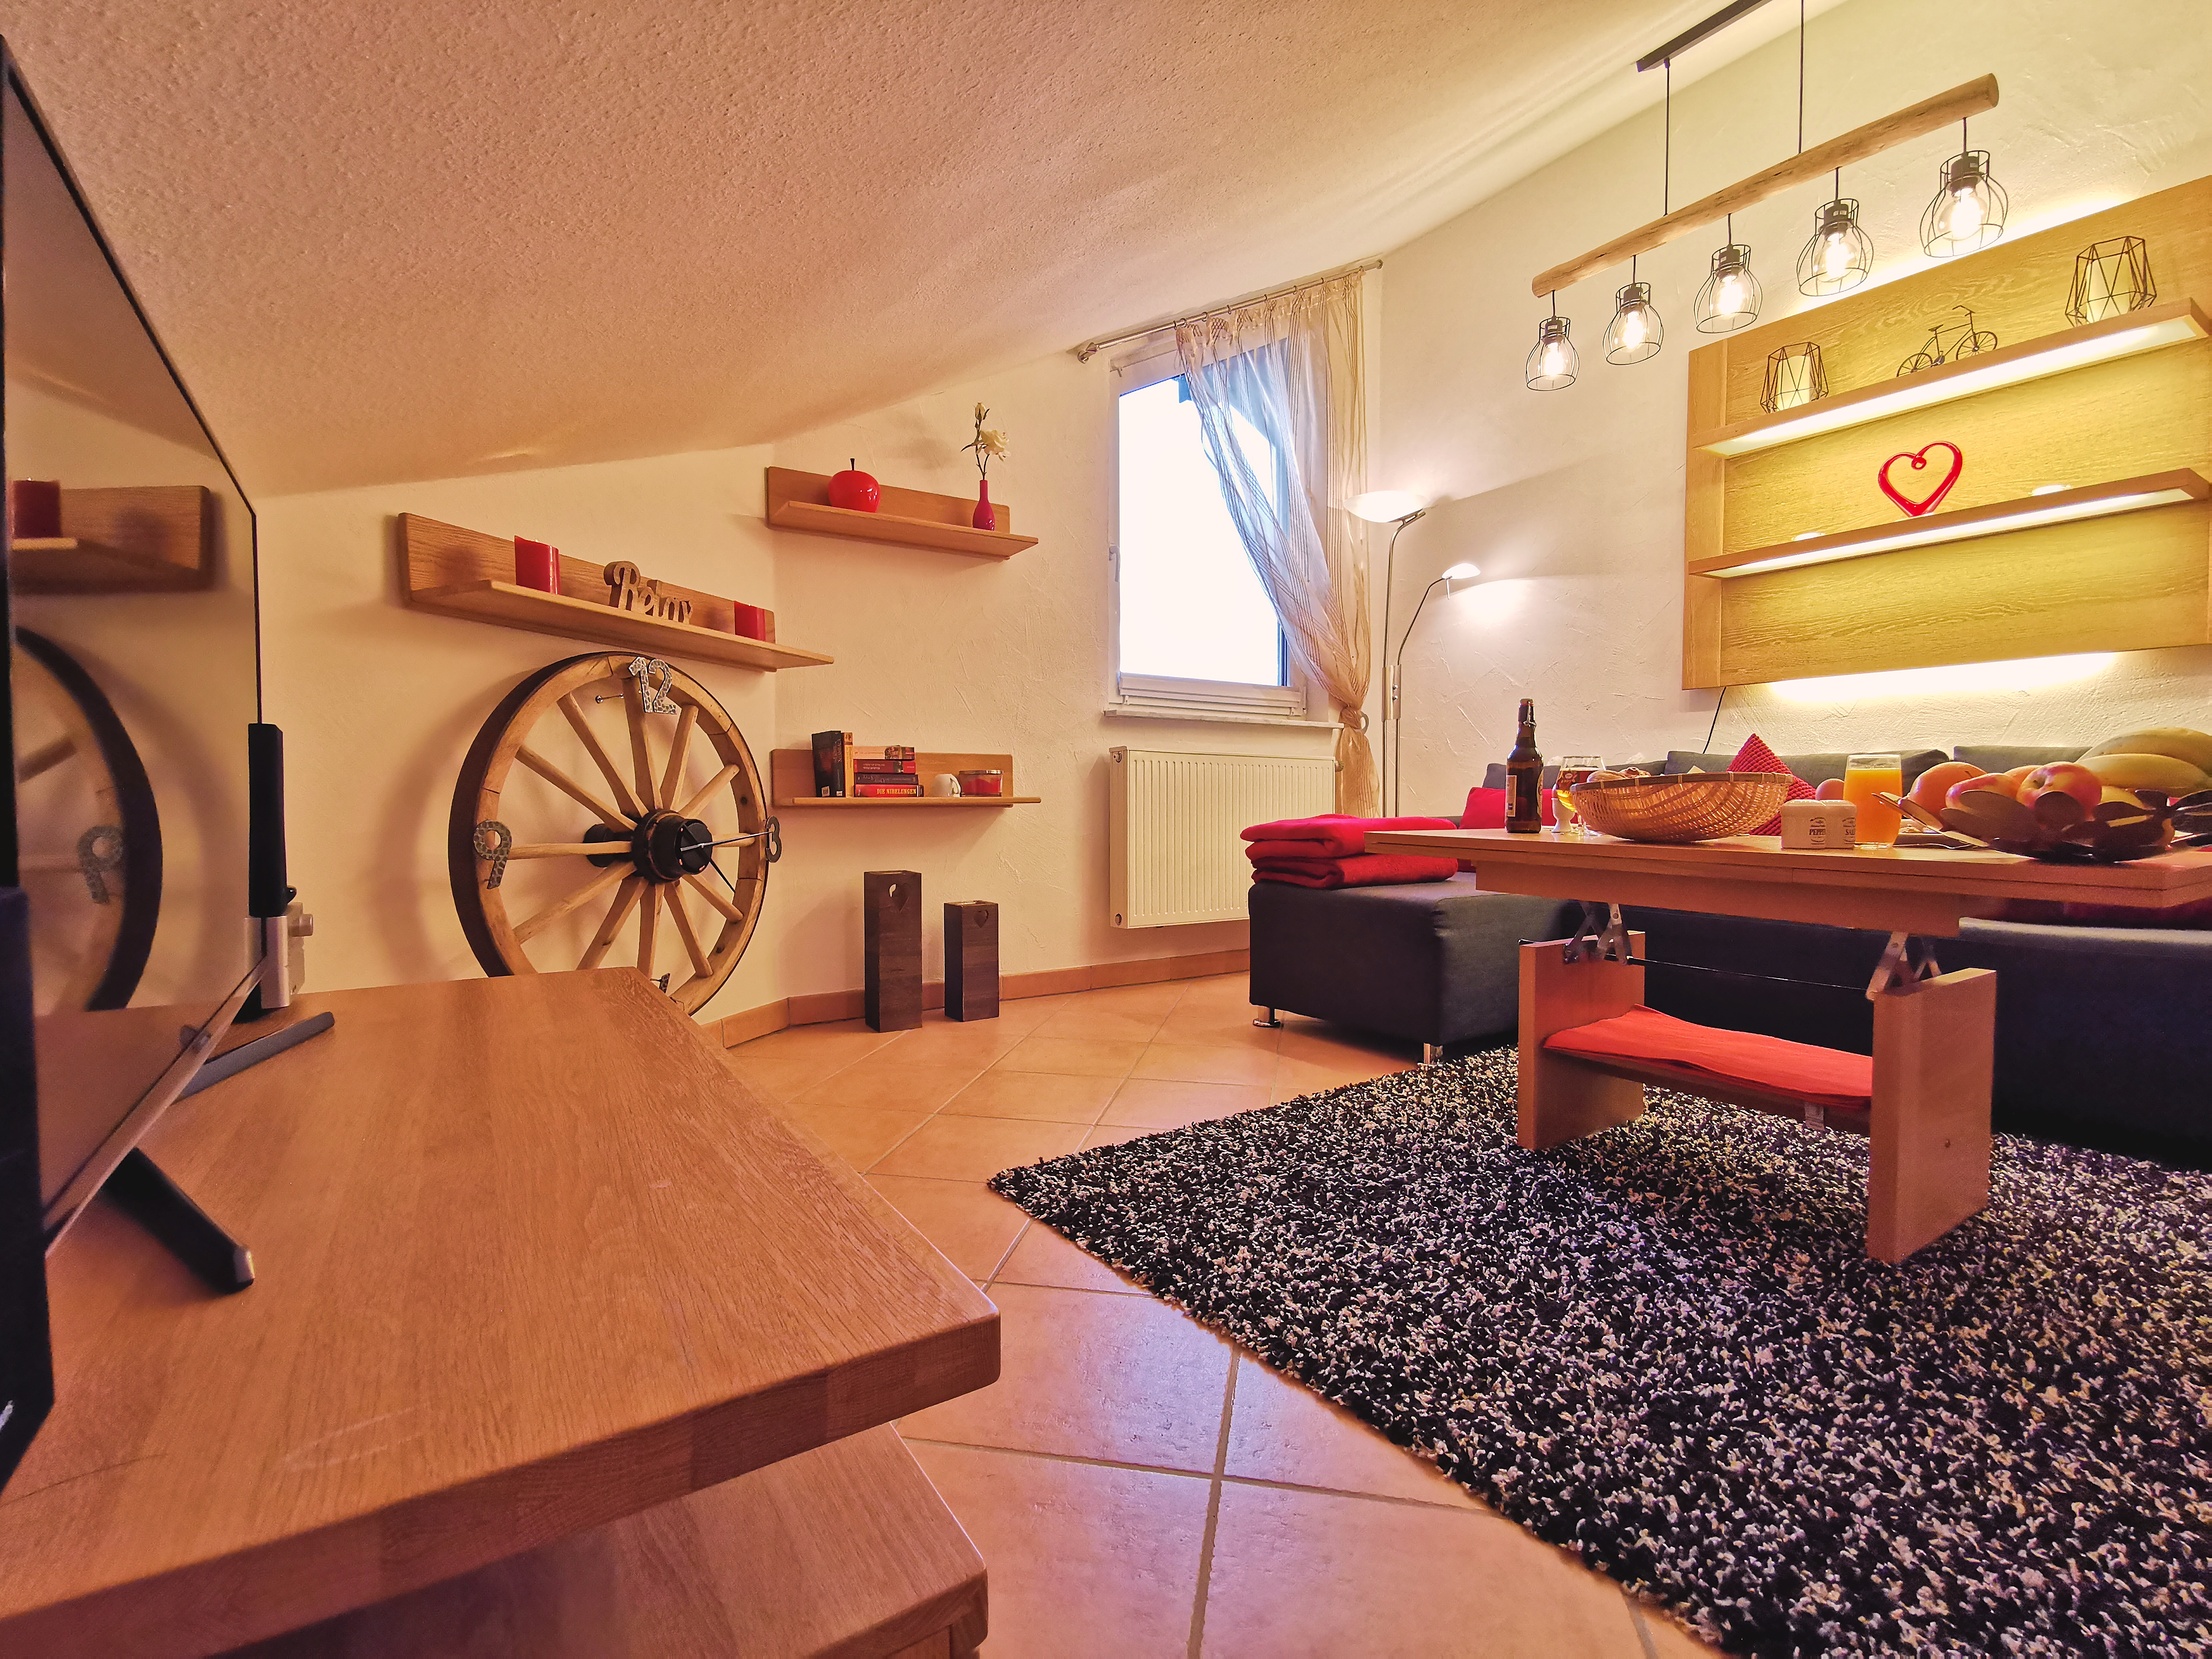 Ferienwohnung Bergtraum Apartments For Rent In Nesselwang